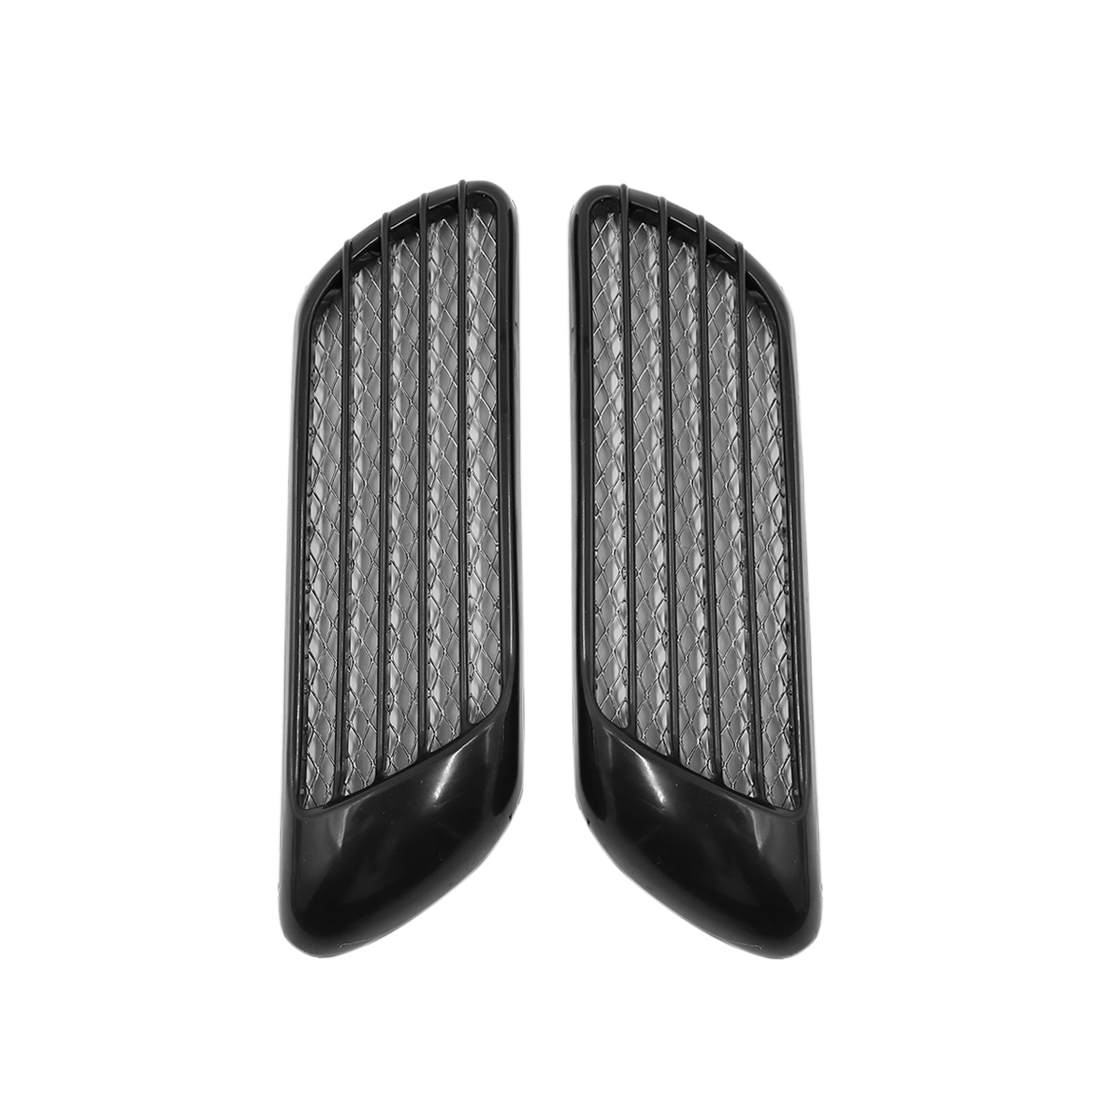 Car Vent Fender Hole Cover Side Air Flow Intake Grille Duct Decor Sticker Pair